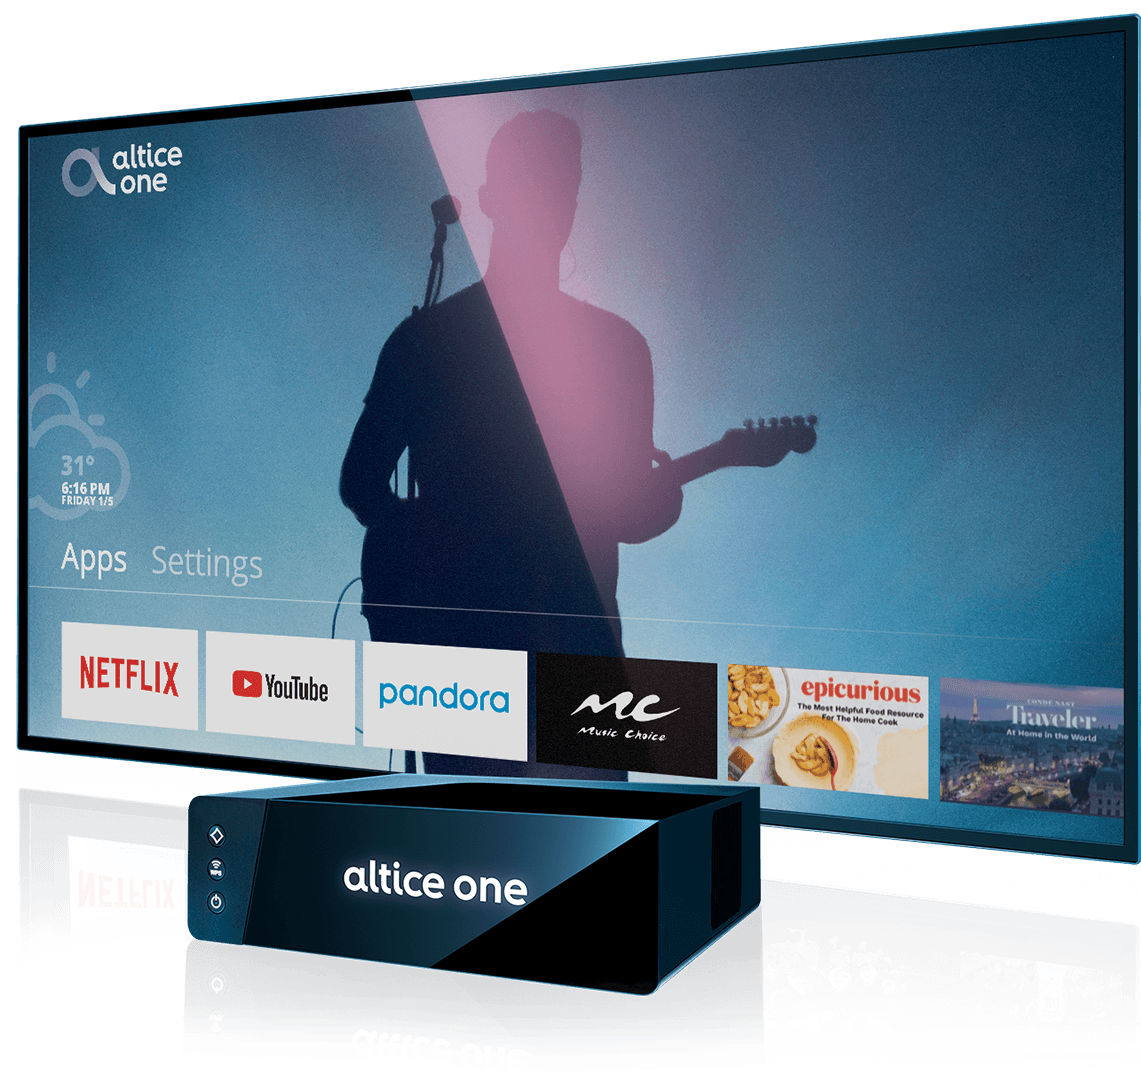 optimum | altice one